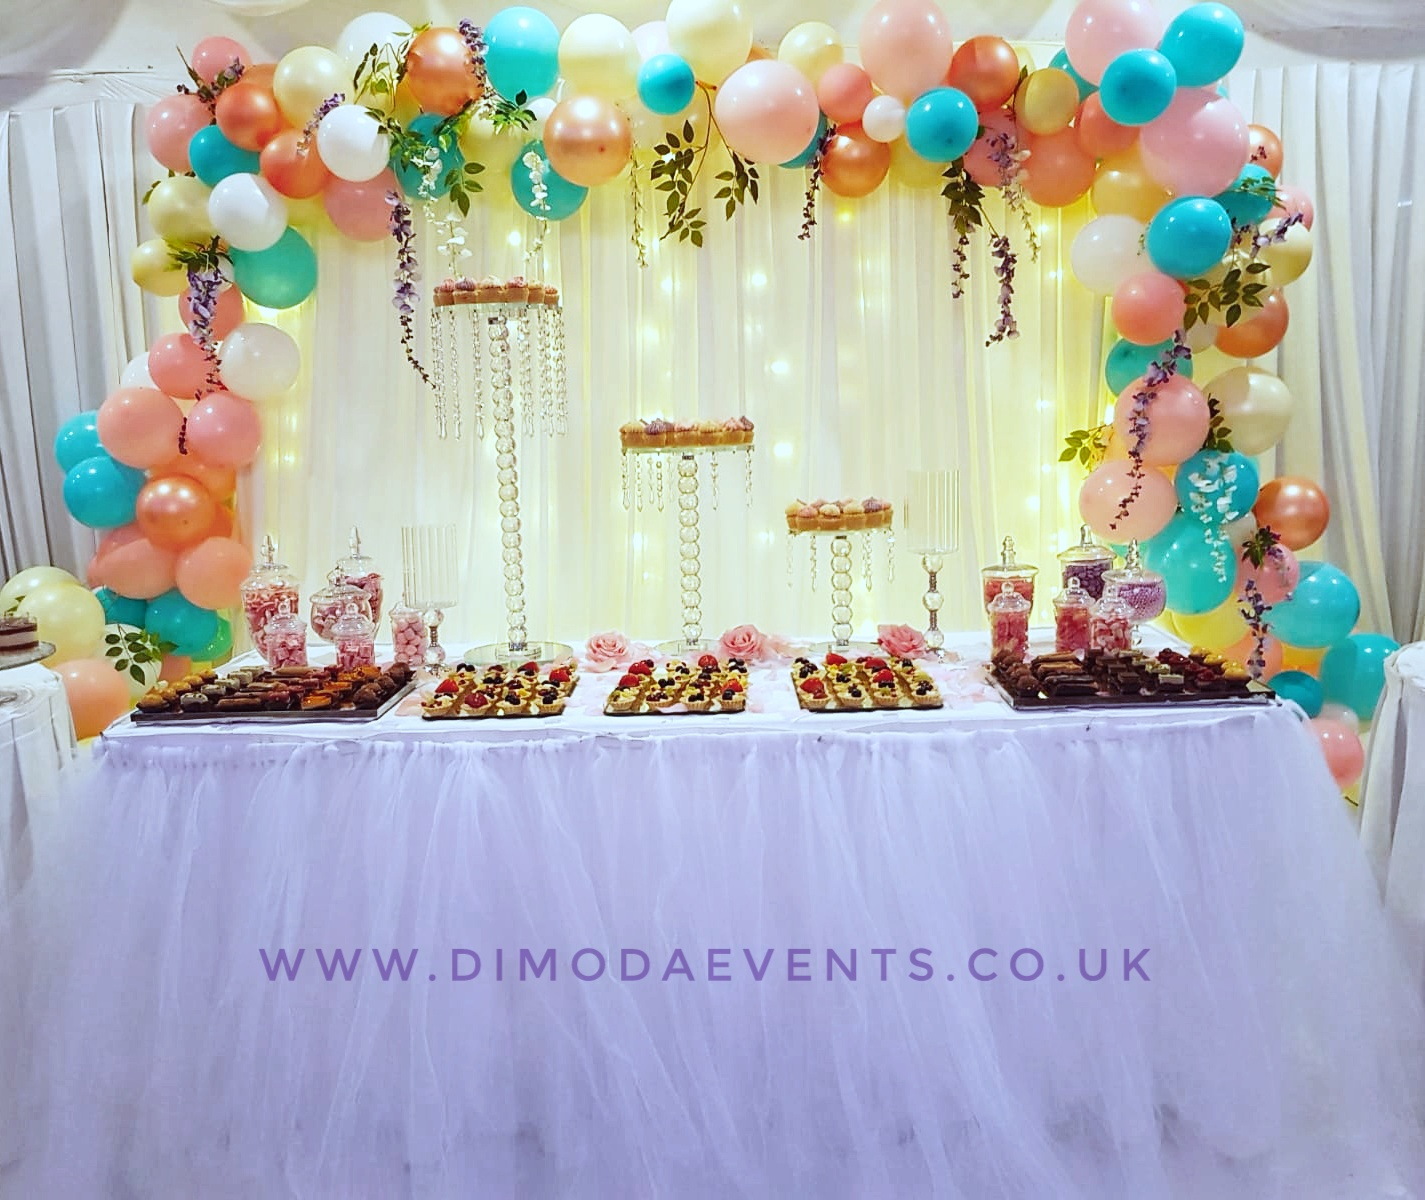 Full 3m Wide Balloon Garland